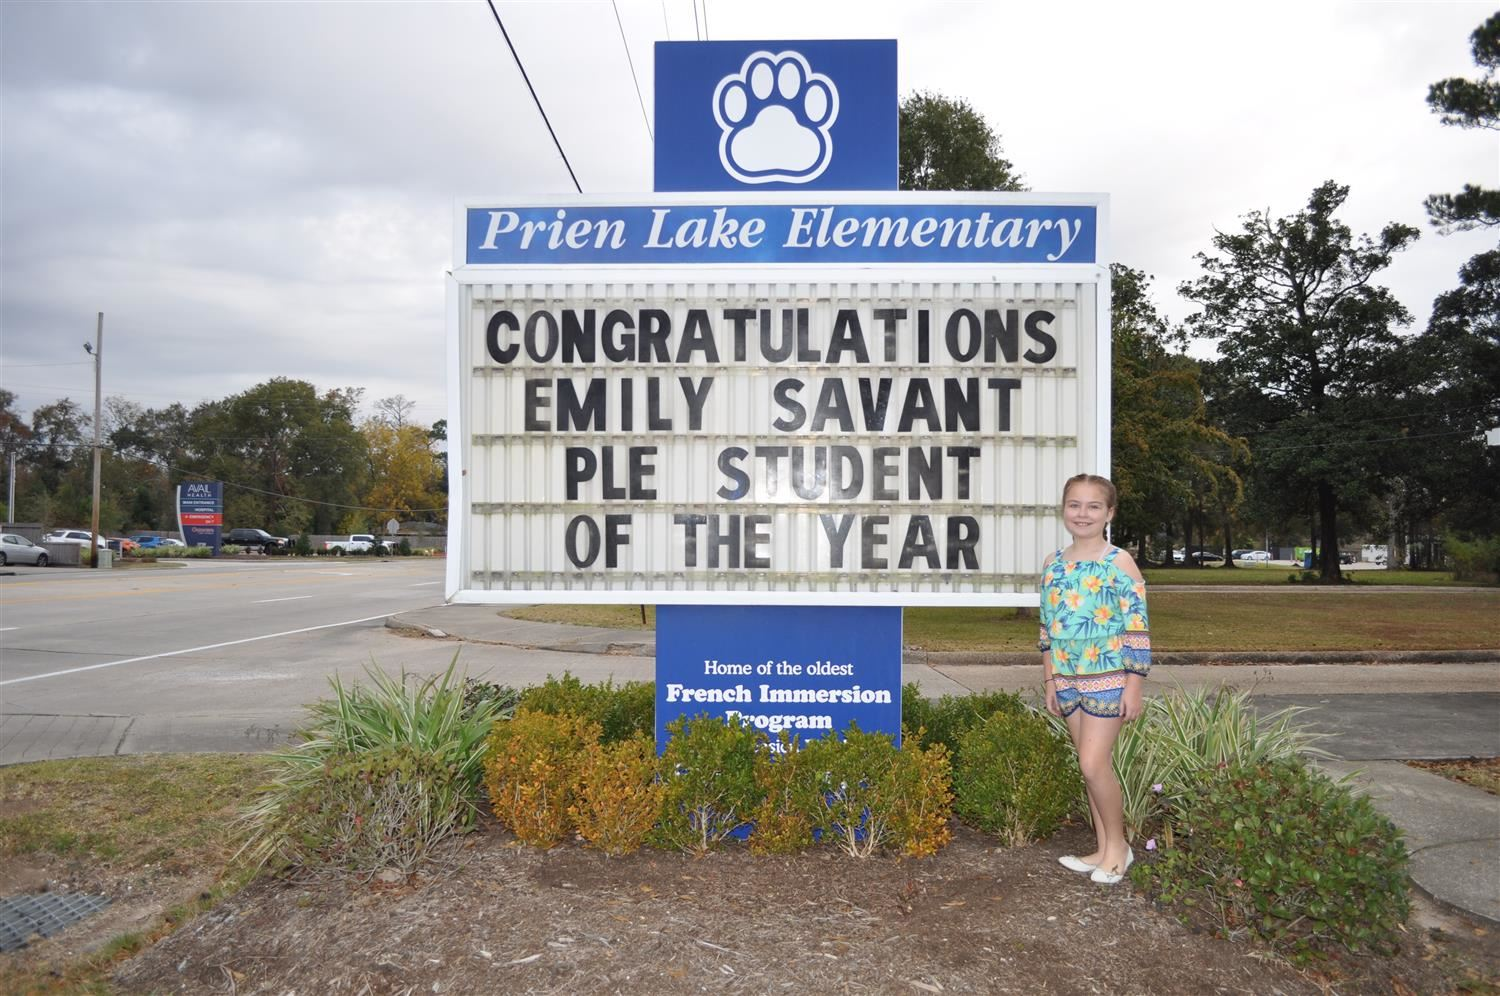 Congratulations, Emily S. for being named PLE Student of the Year! We are so proud of you!